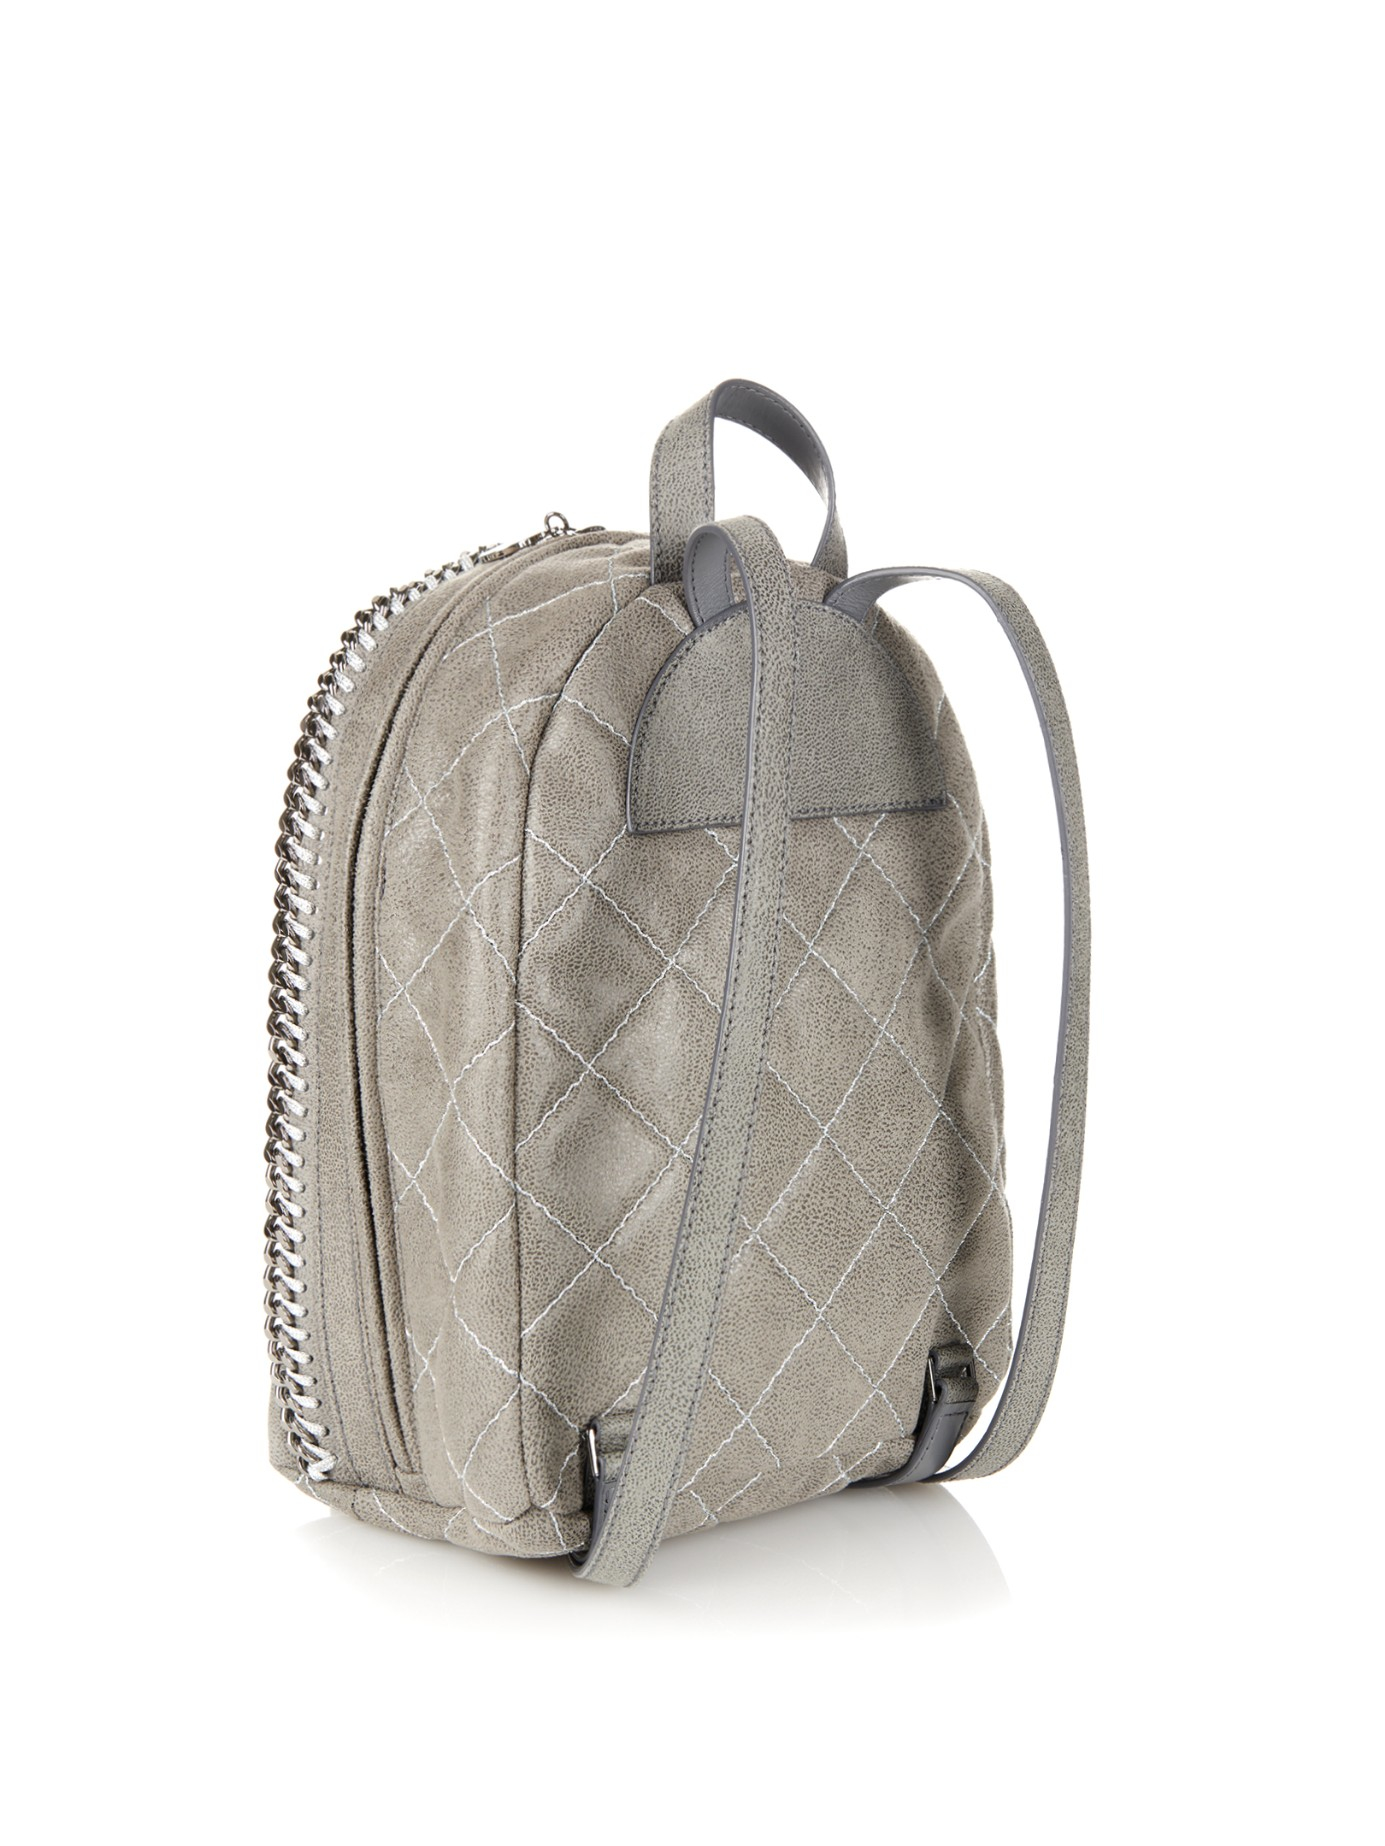 72dd3570c2c Gallery. Previously sold at  MATCHESFASHION.COM · Women s Mini Backpack  Women s Stella Mccartney Falabella ...